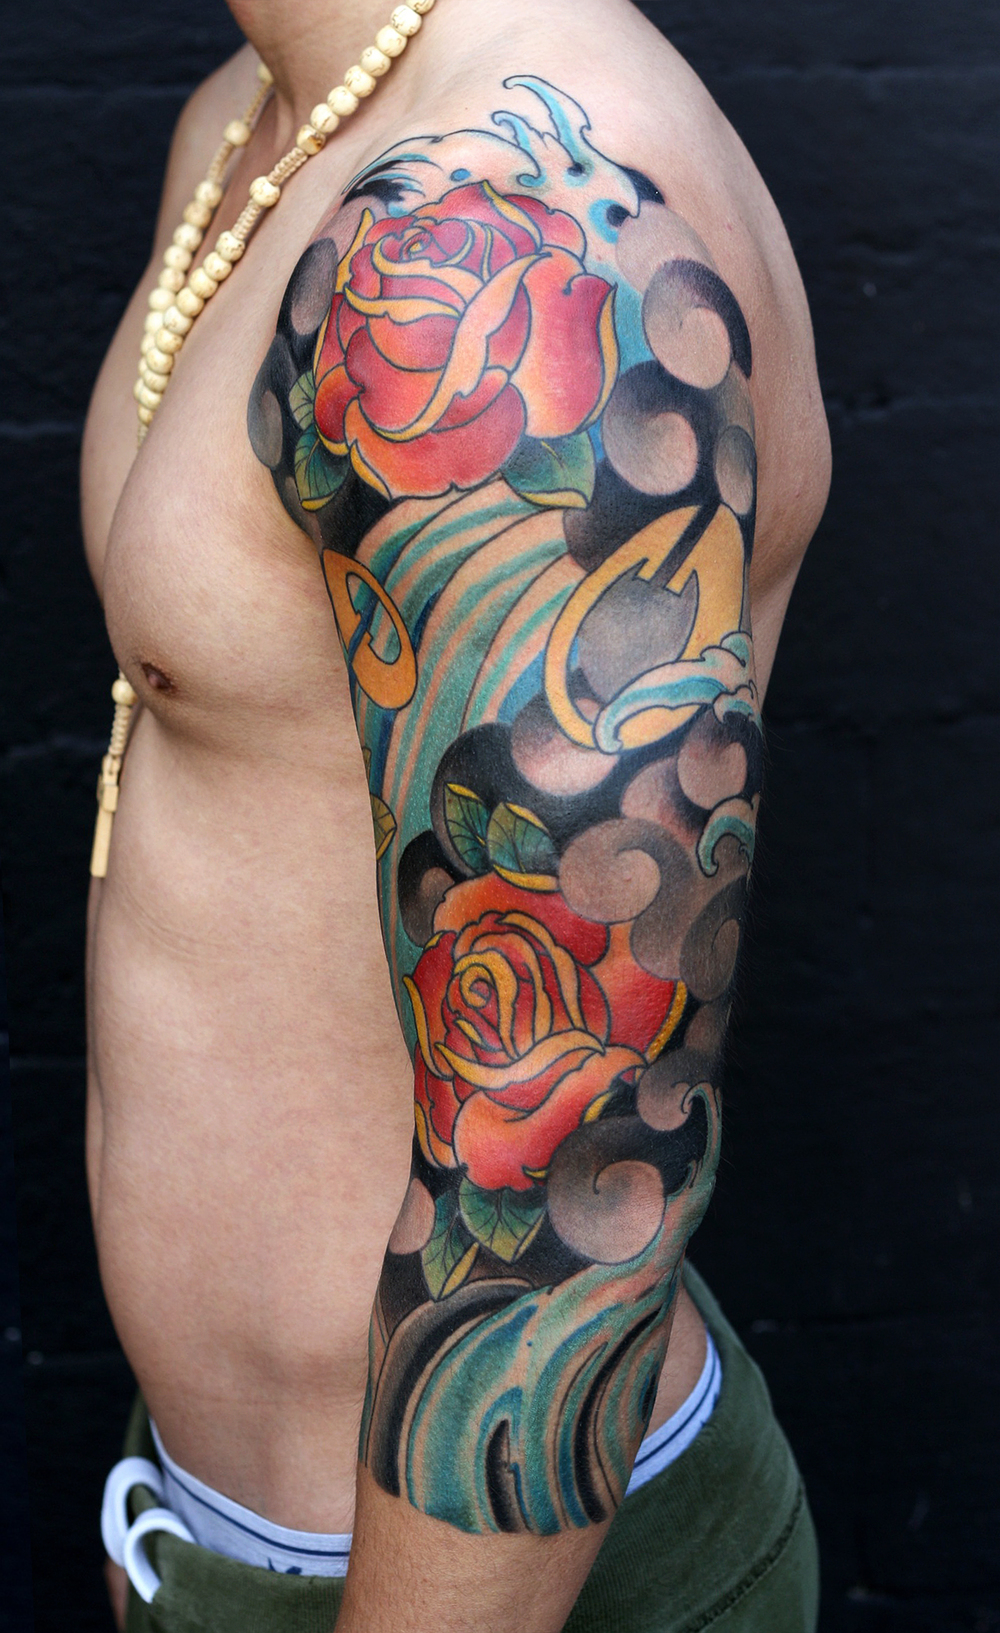 sleeve-asian-color-Tattoo -LA-LosAngeles-besttattoo-besttattooartist-besttattooartists-top-pictures-images-photo-tat-ink-inked-bigboy-guestartist-rabblerousertattoo